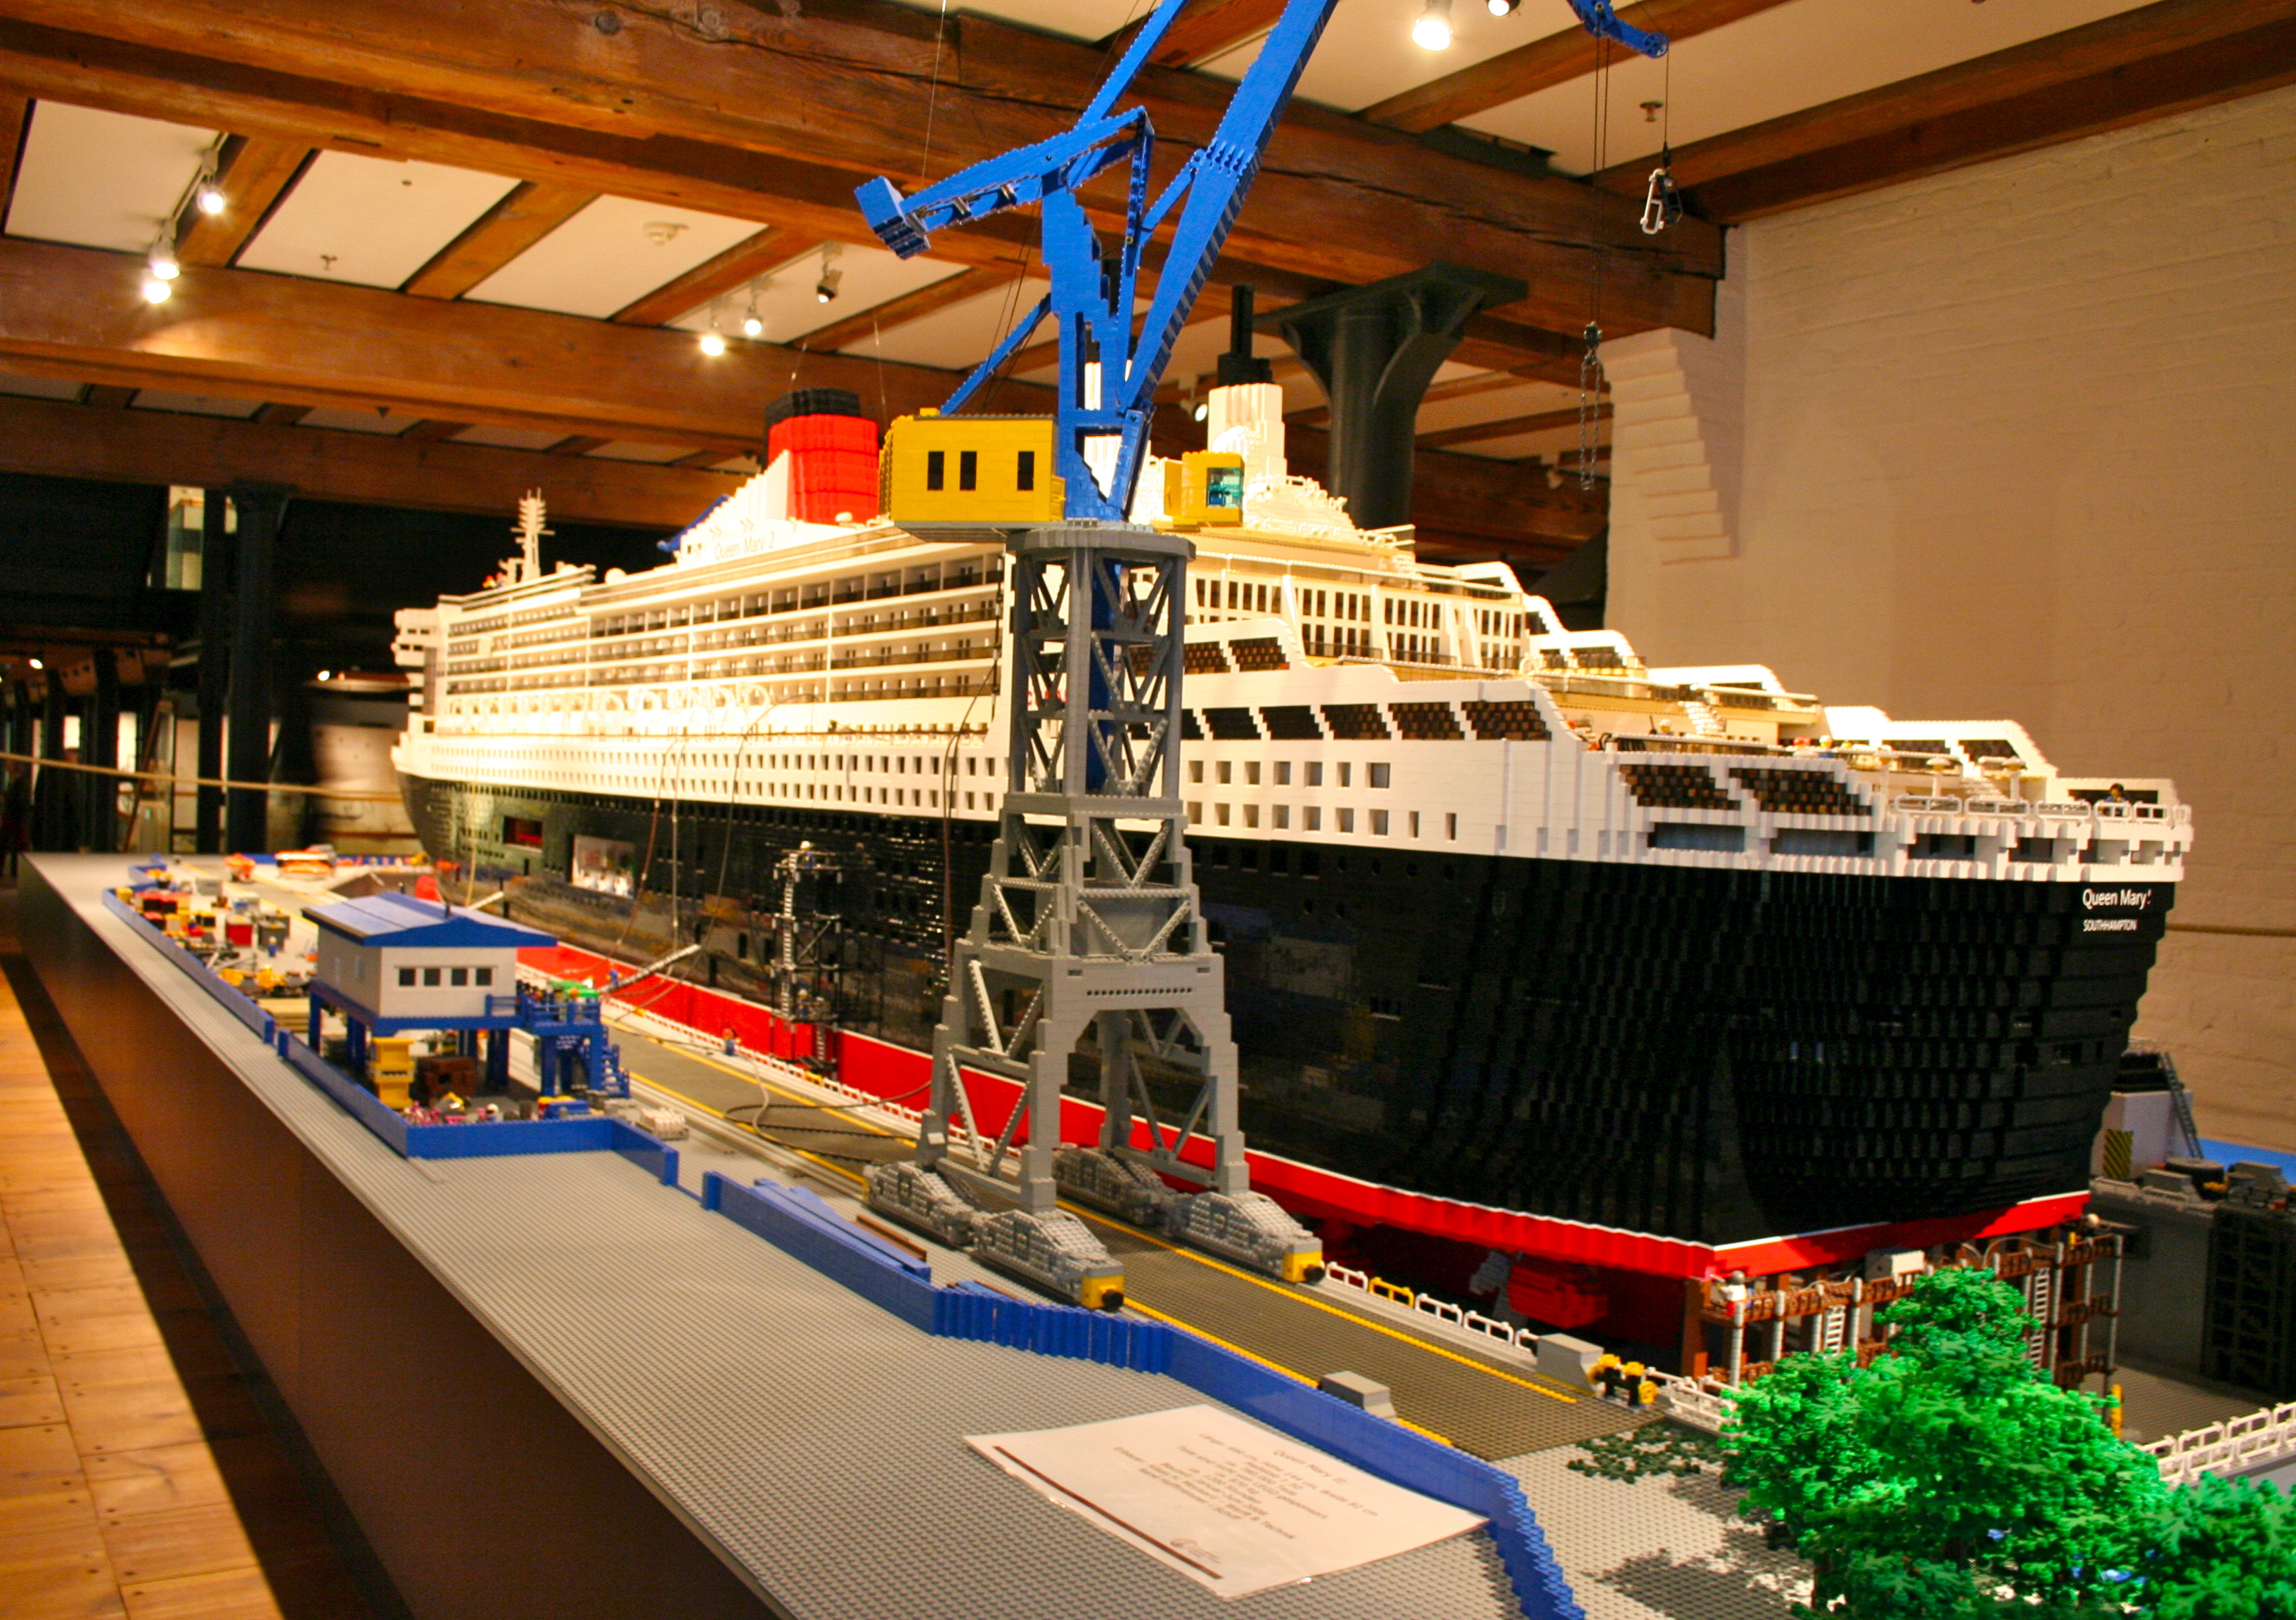 huge rc boats with File Lego Queen Mary 2 Model   Internationales Maritimes Museum Hamburg on RemoteControlGiantTRexDinosaurRTRRC together with Collectionldwn Largest Car In The World in addition Worlds Largest Aircraft also Showthread additionally File LEGO Queen Mary 2 model   Internationales Maritimes Museum Hamburg.